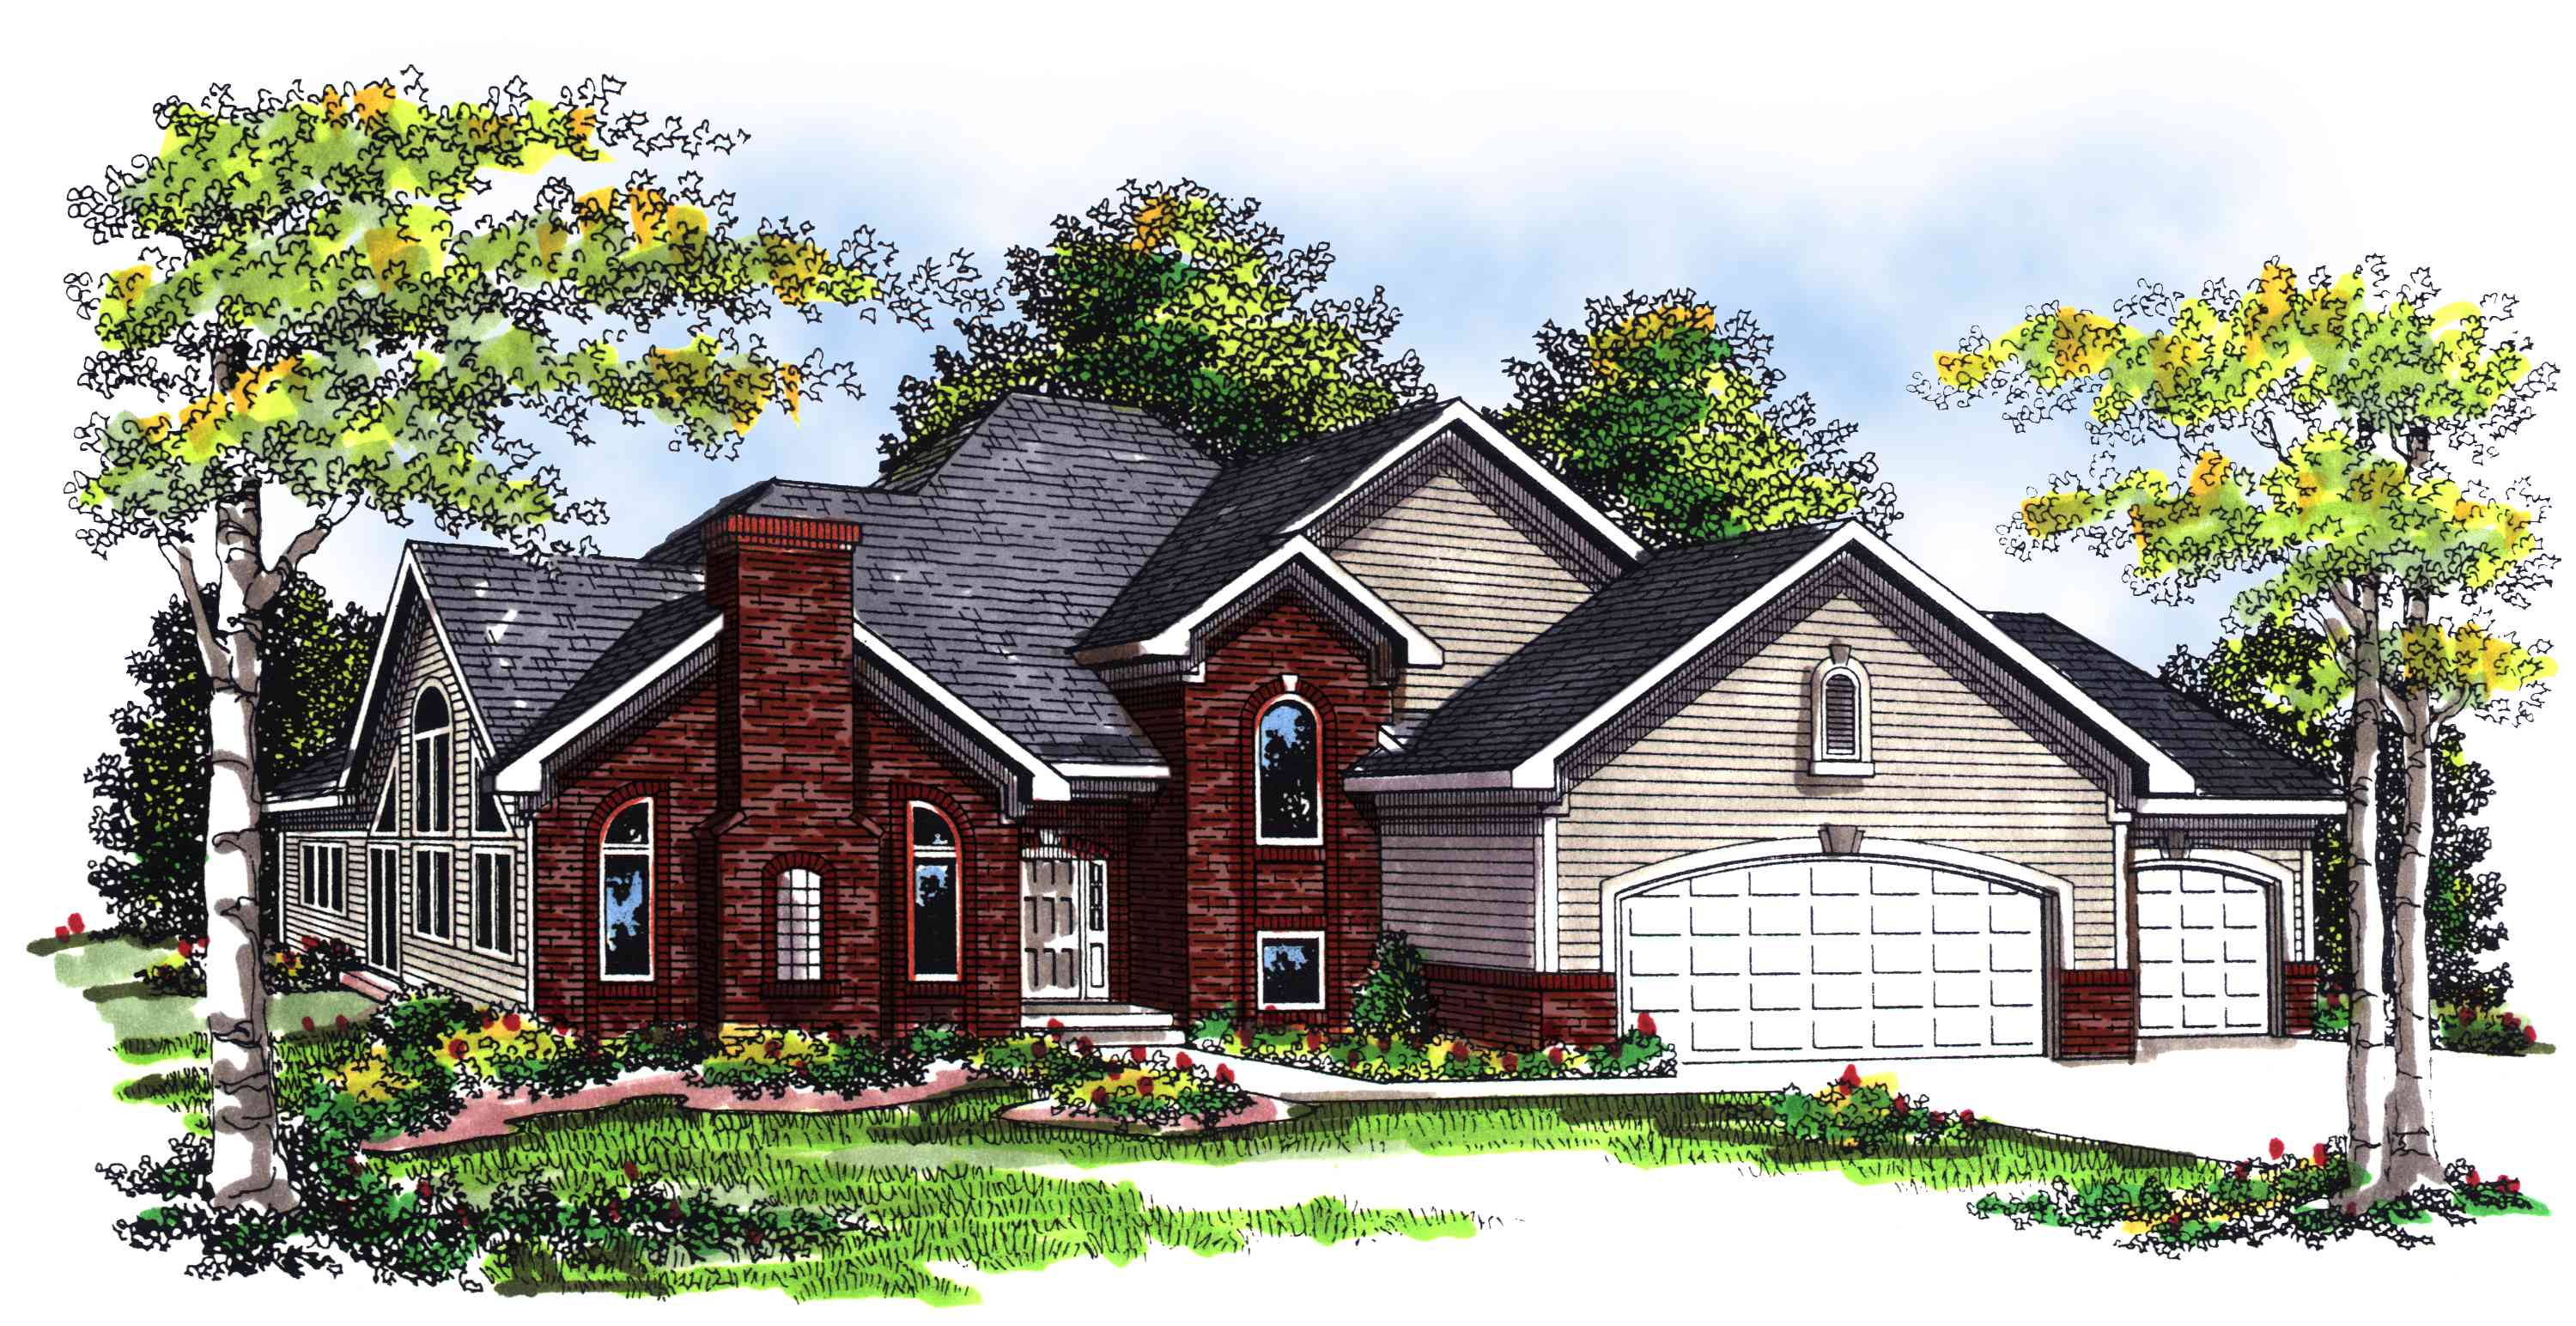 Two story brick and siding home plan 89274ah for 2 story brick house plans